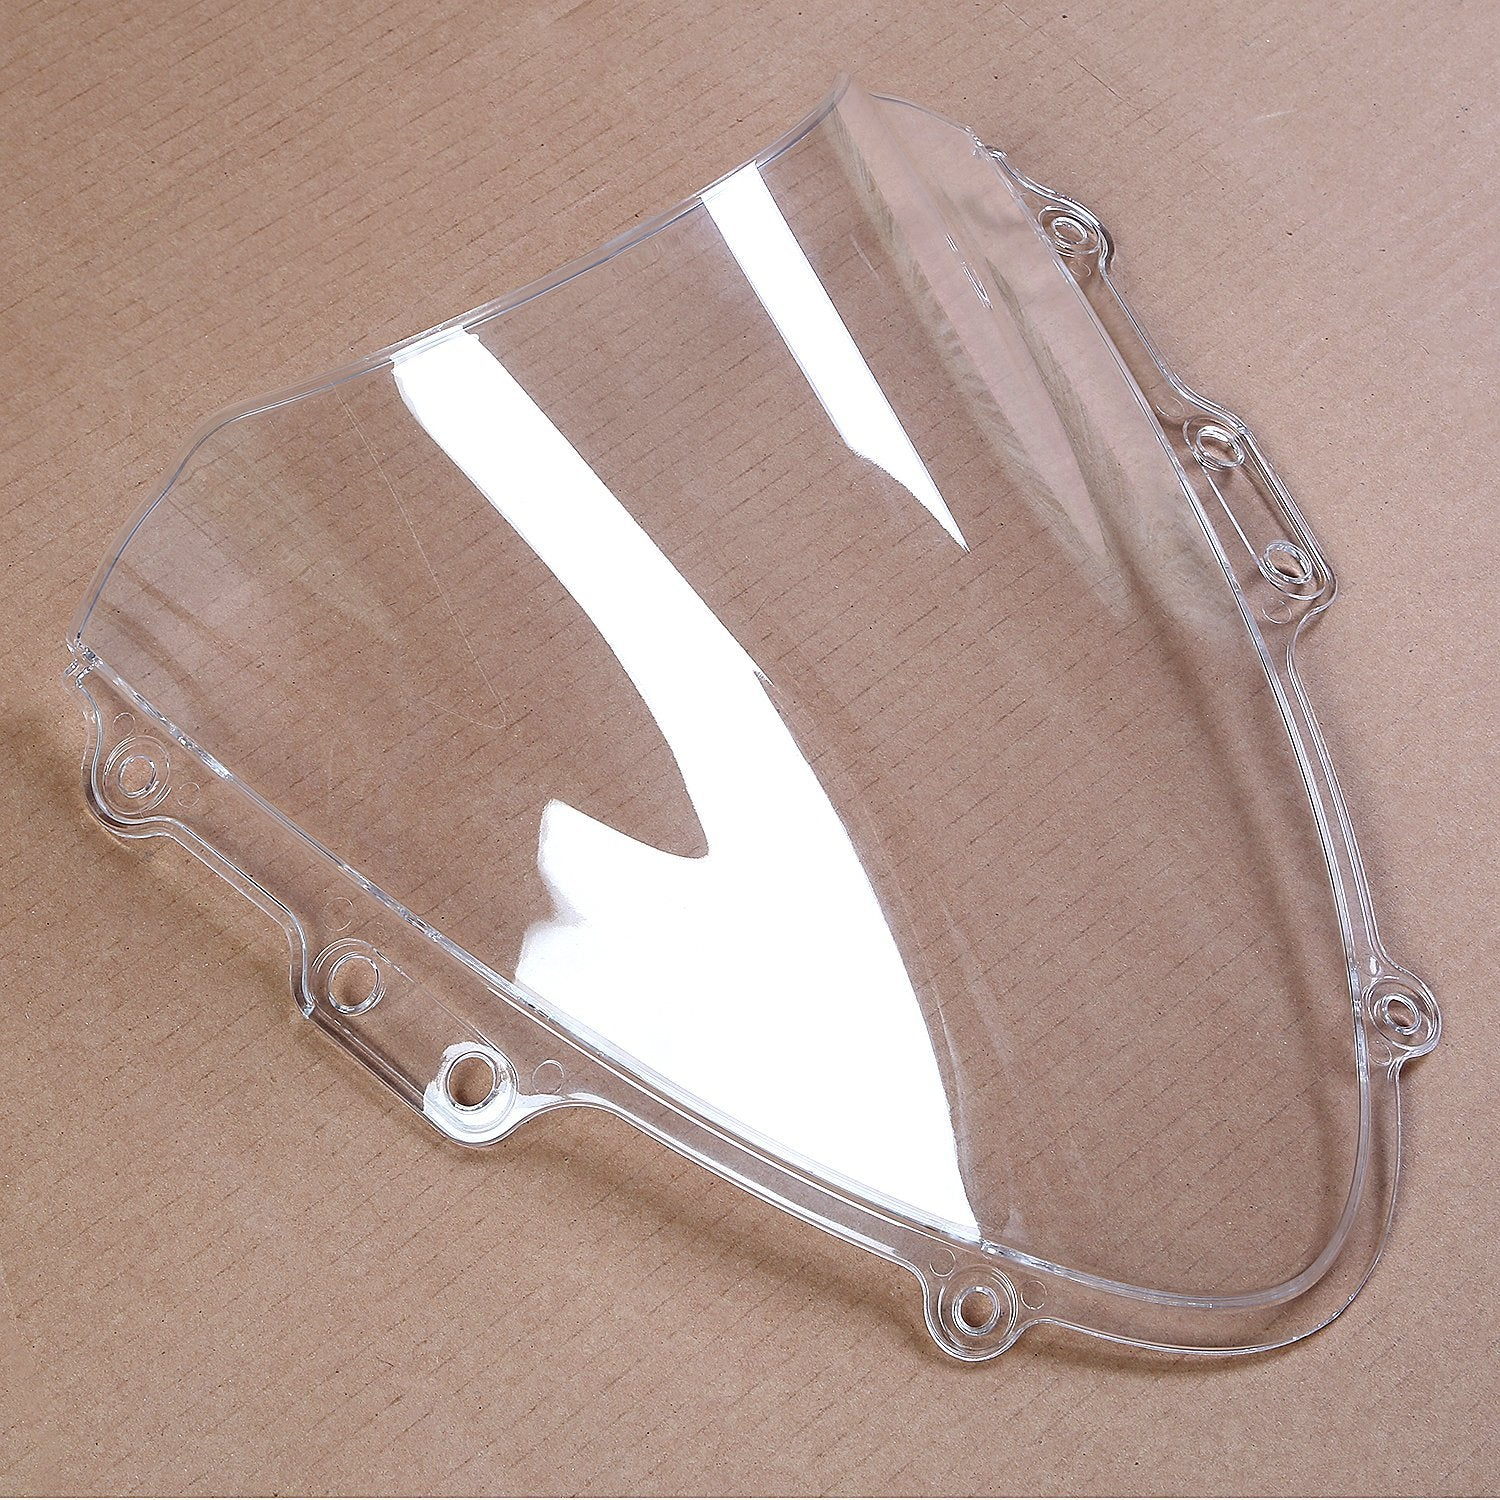 Clear Windscreen for Suzuki GSXR 600/750 2004-2005